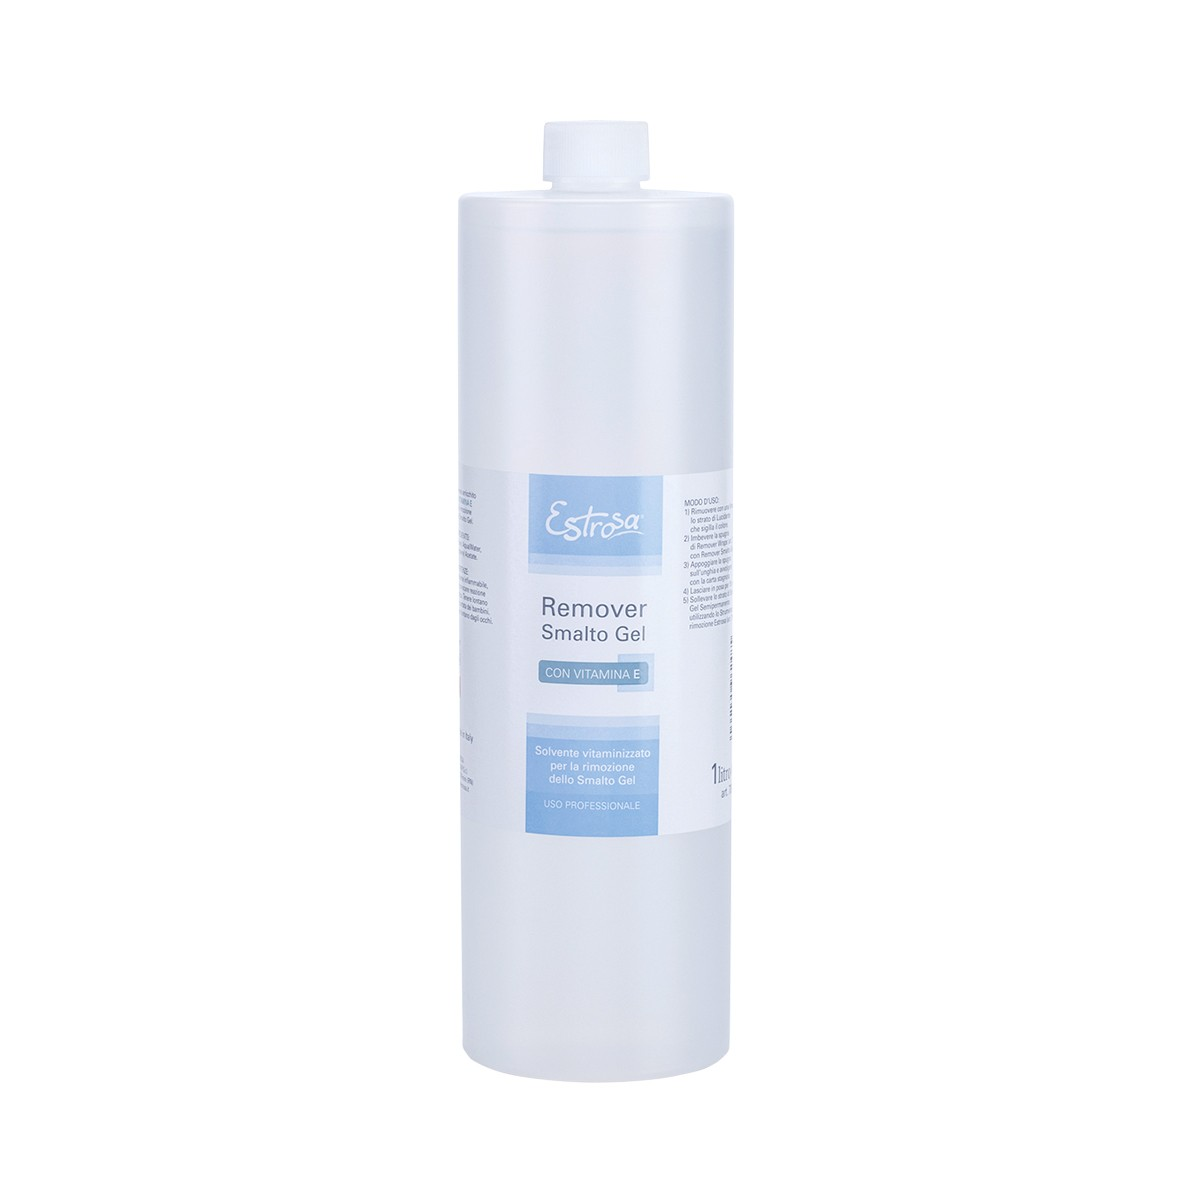 1000 ml Remover Smalto Gel Estrosa